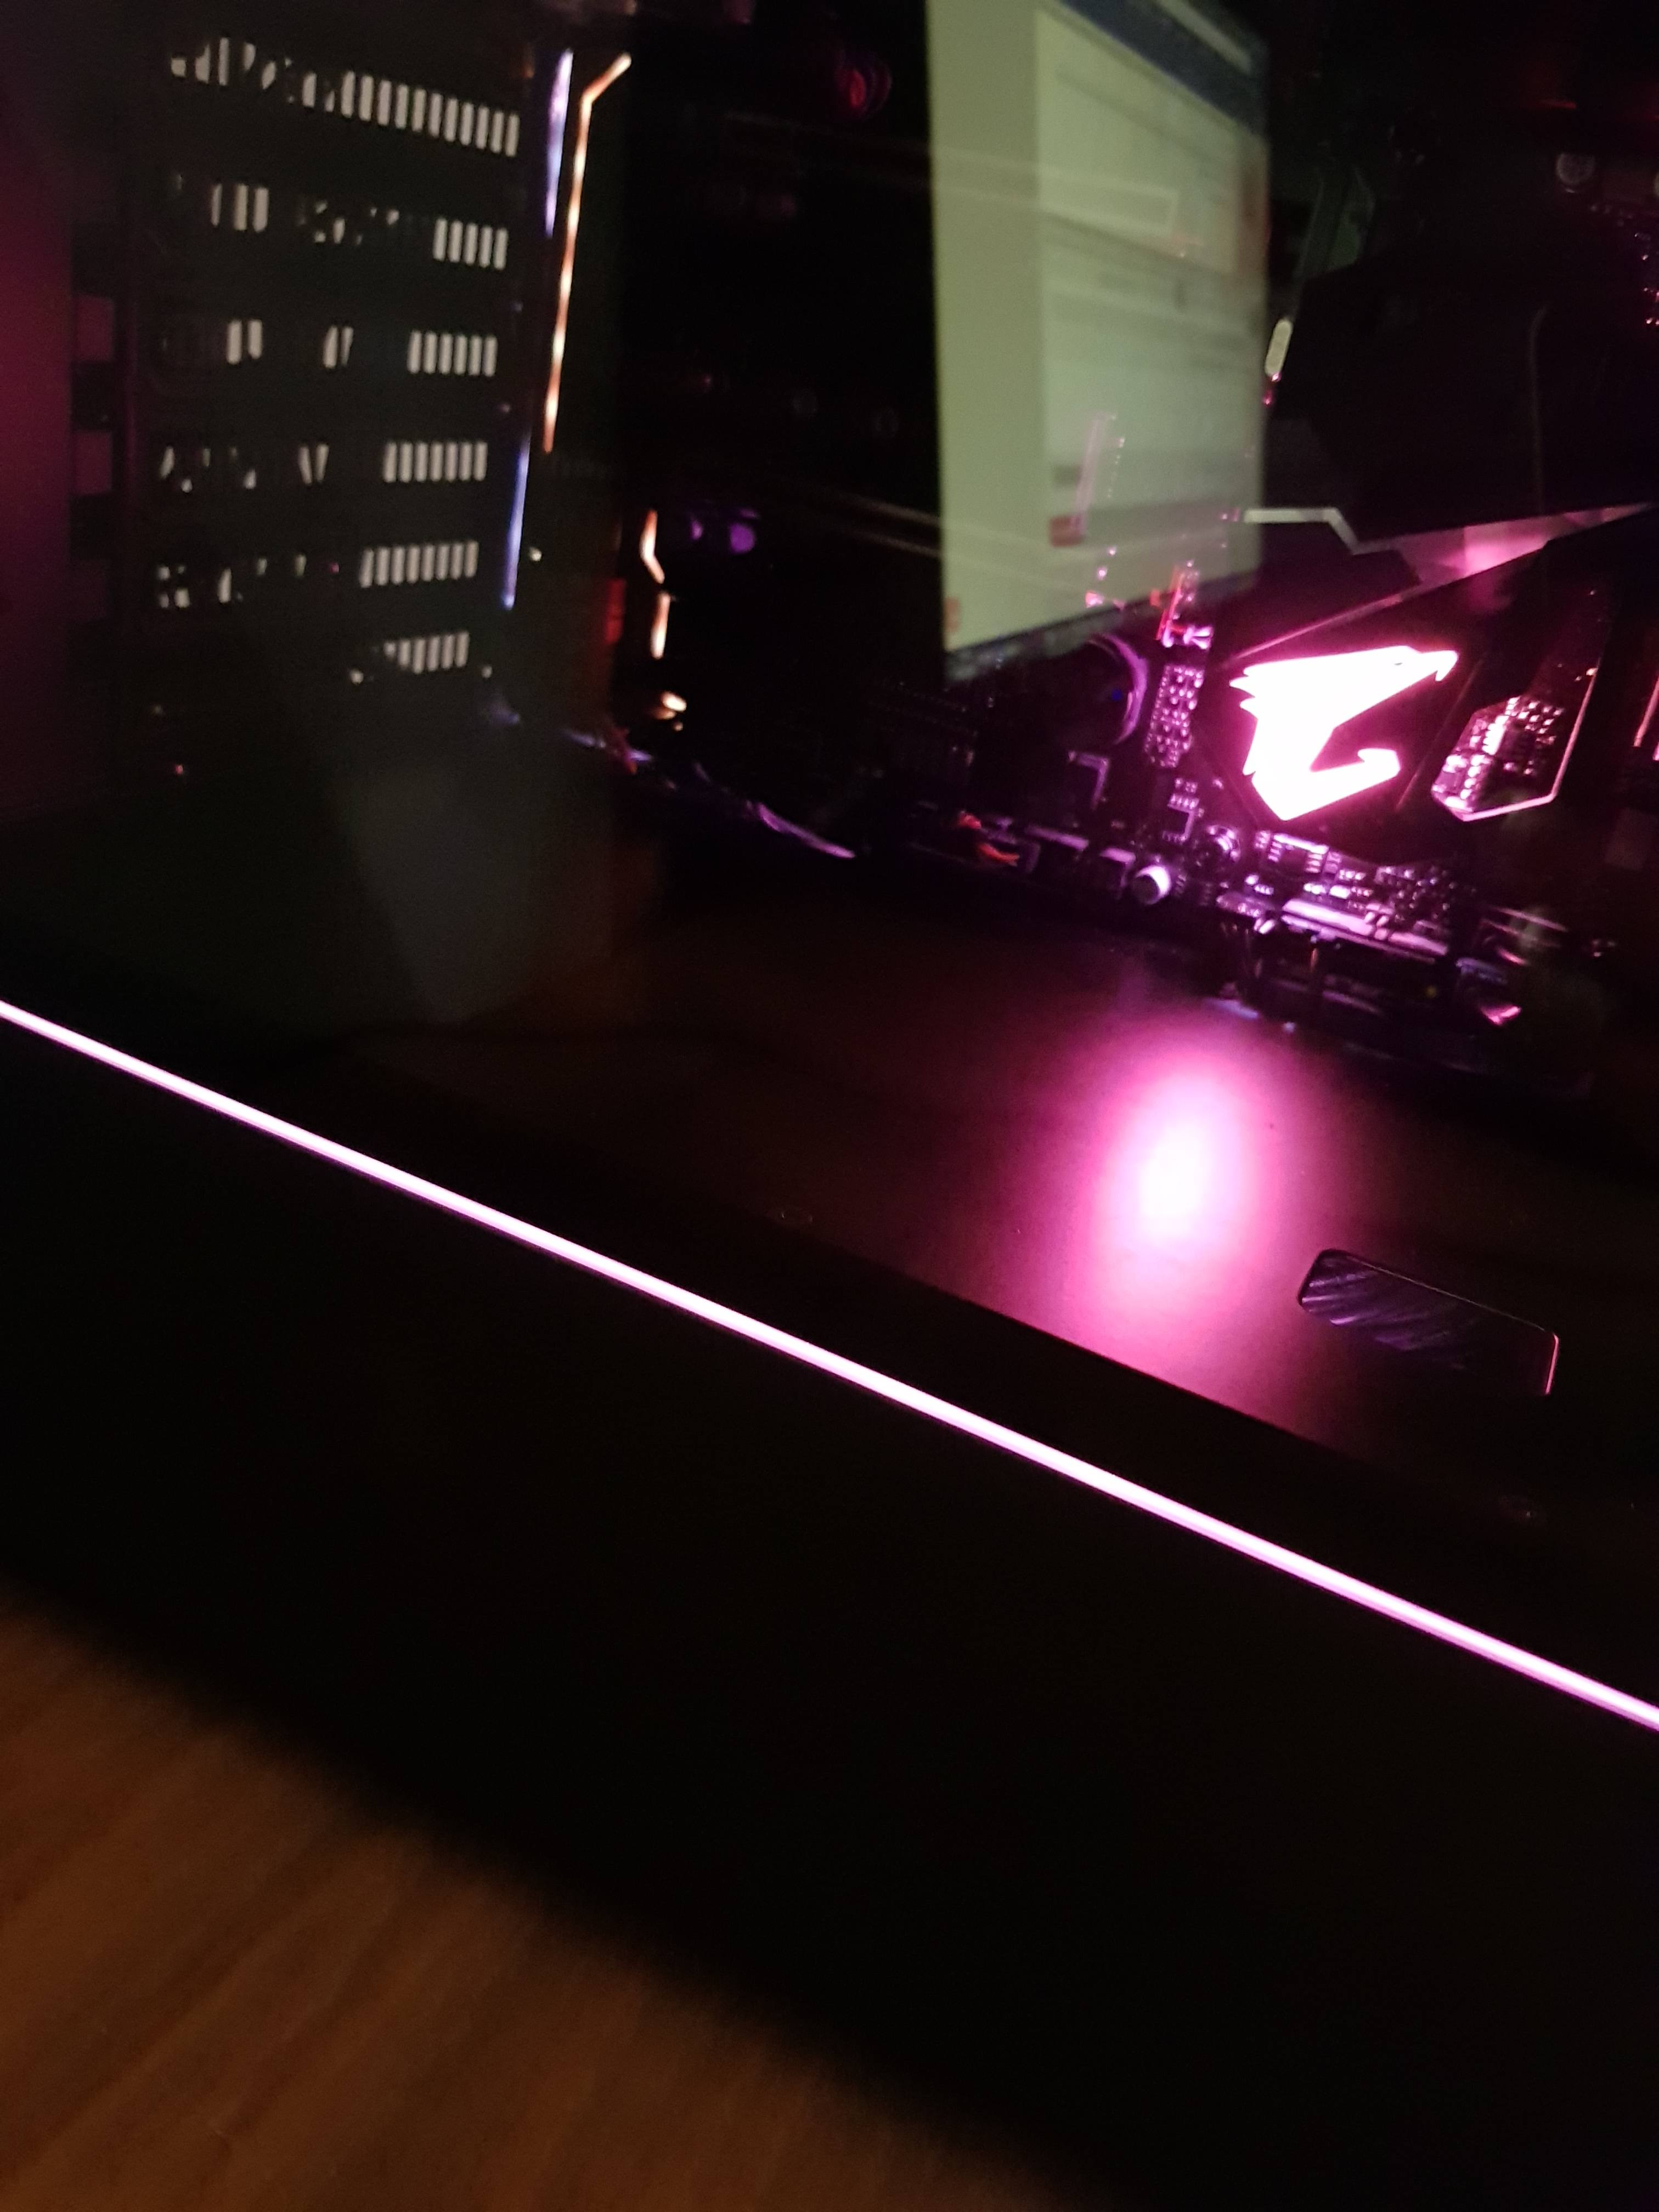 Phanteks P350X Case RGB Connector: Where does it go? - Cases and